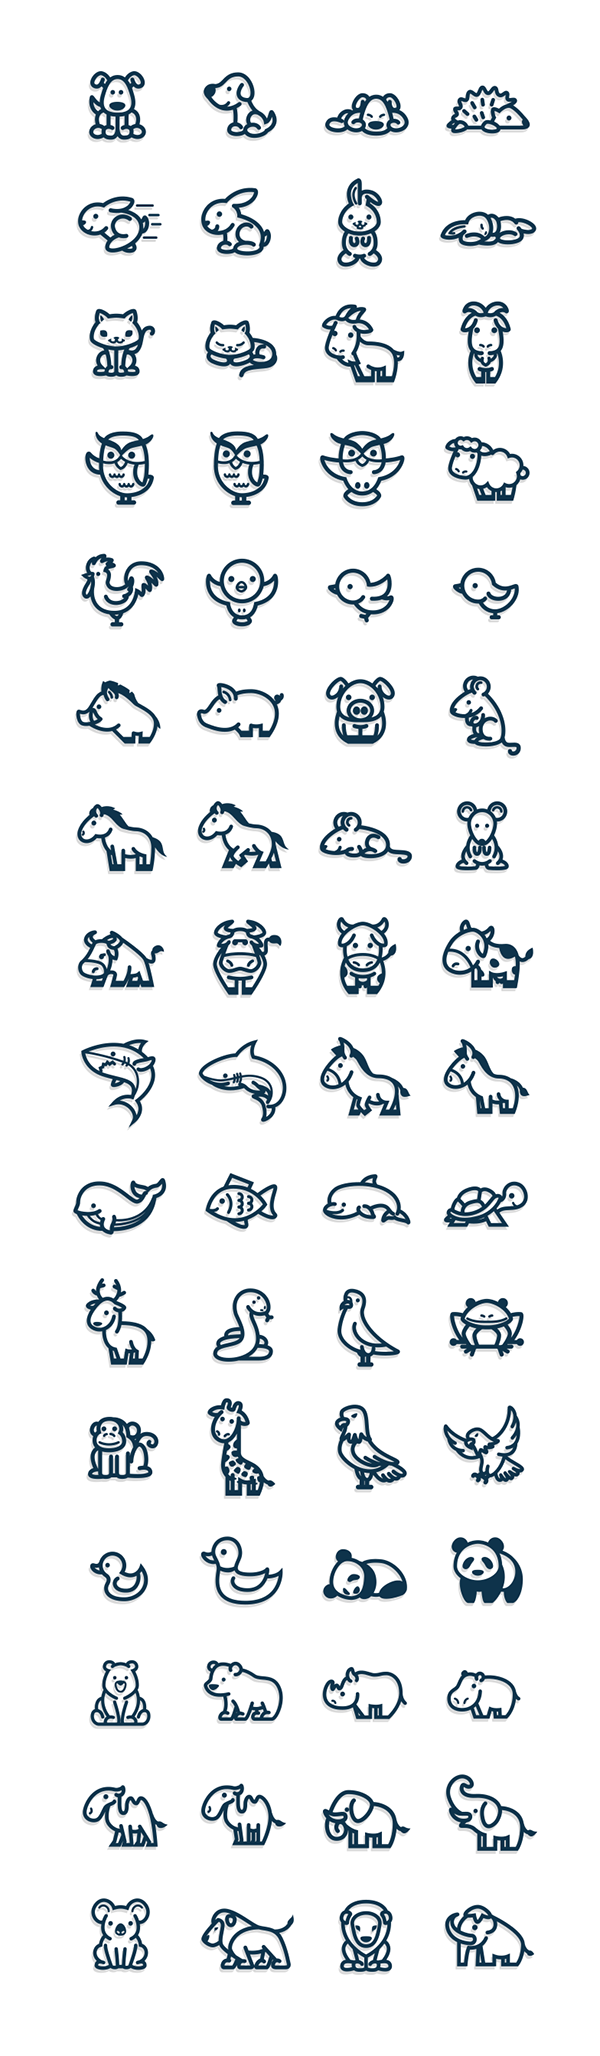 Cute And Simple Vectorial Animal Icons Milye Tatuirovki Tatuirovki Malenkie Tatuirovki